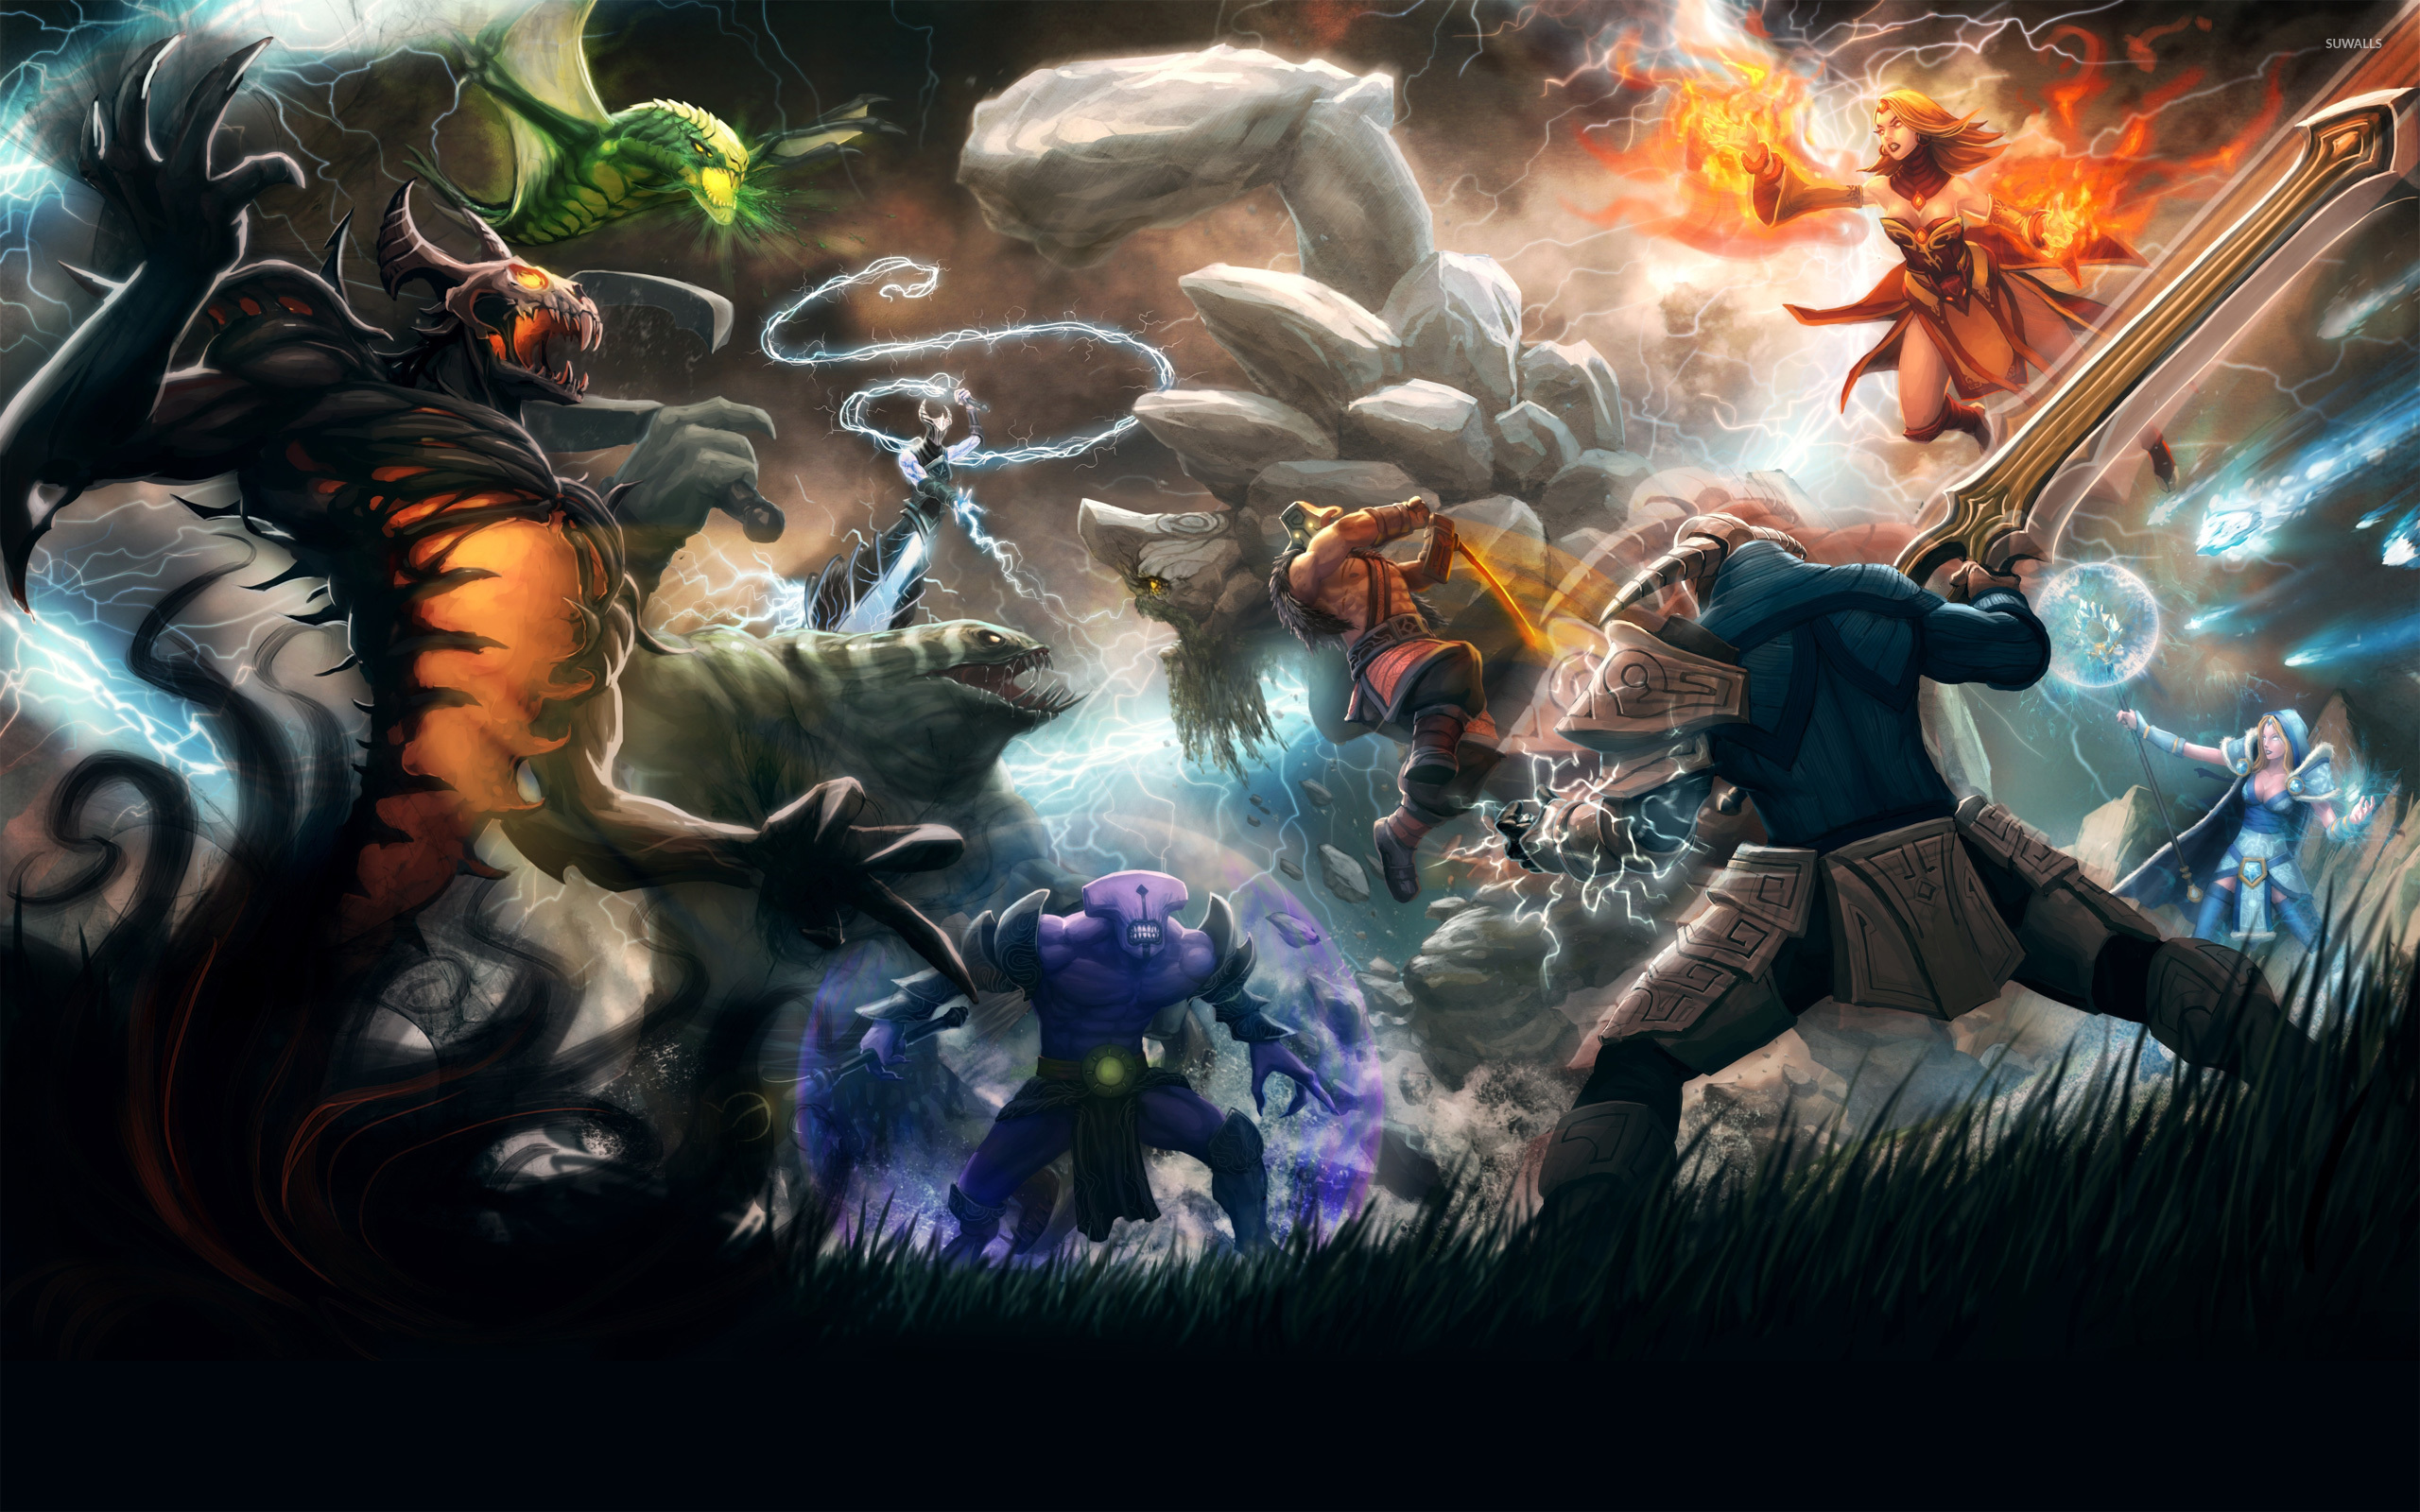 Dota 2 Wallpaper Game Wallpapers 6962